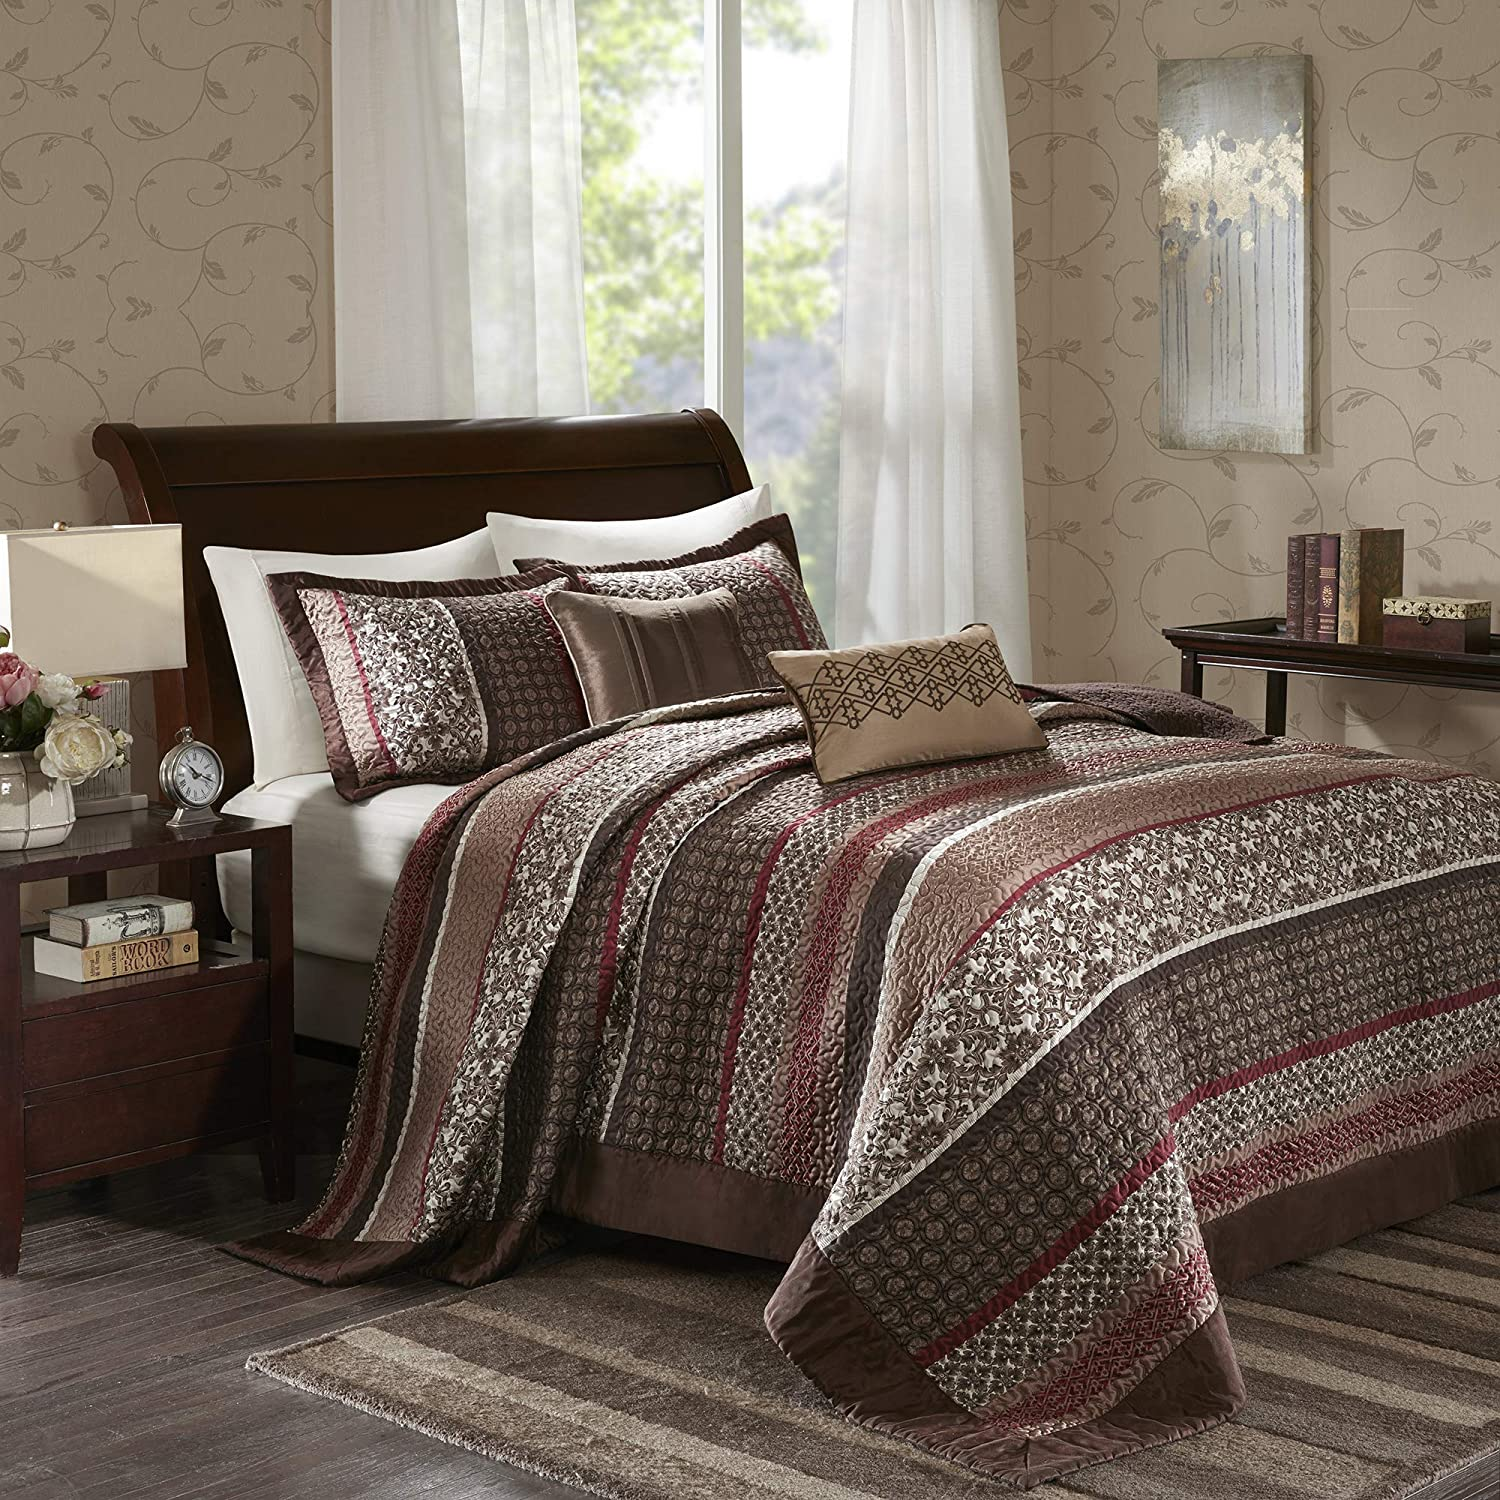 Madison Park Princeton Queen Size Quilt Bedding Set - Crimson Red, Jacquard Patterned Striped – 5 Piece Bedding Quilt Coverlets – Ultra Soft Microfiber Bed Quilts Quilted Coverlet